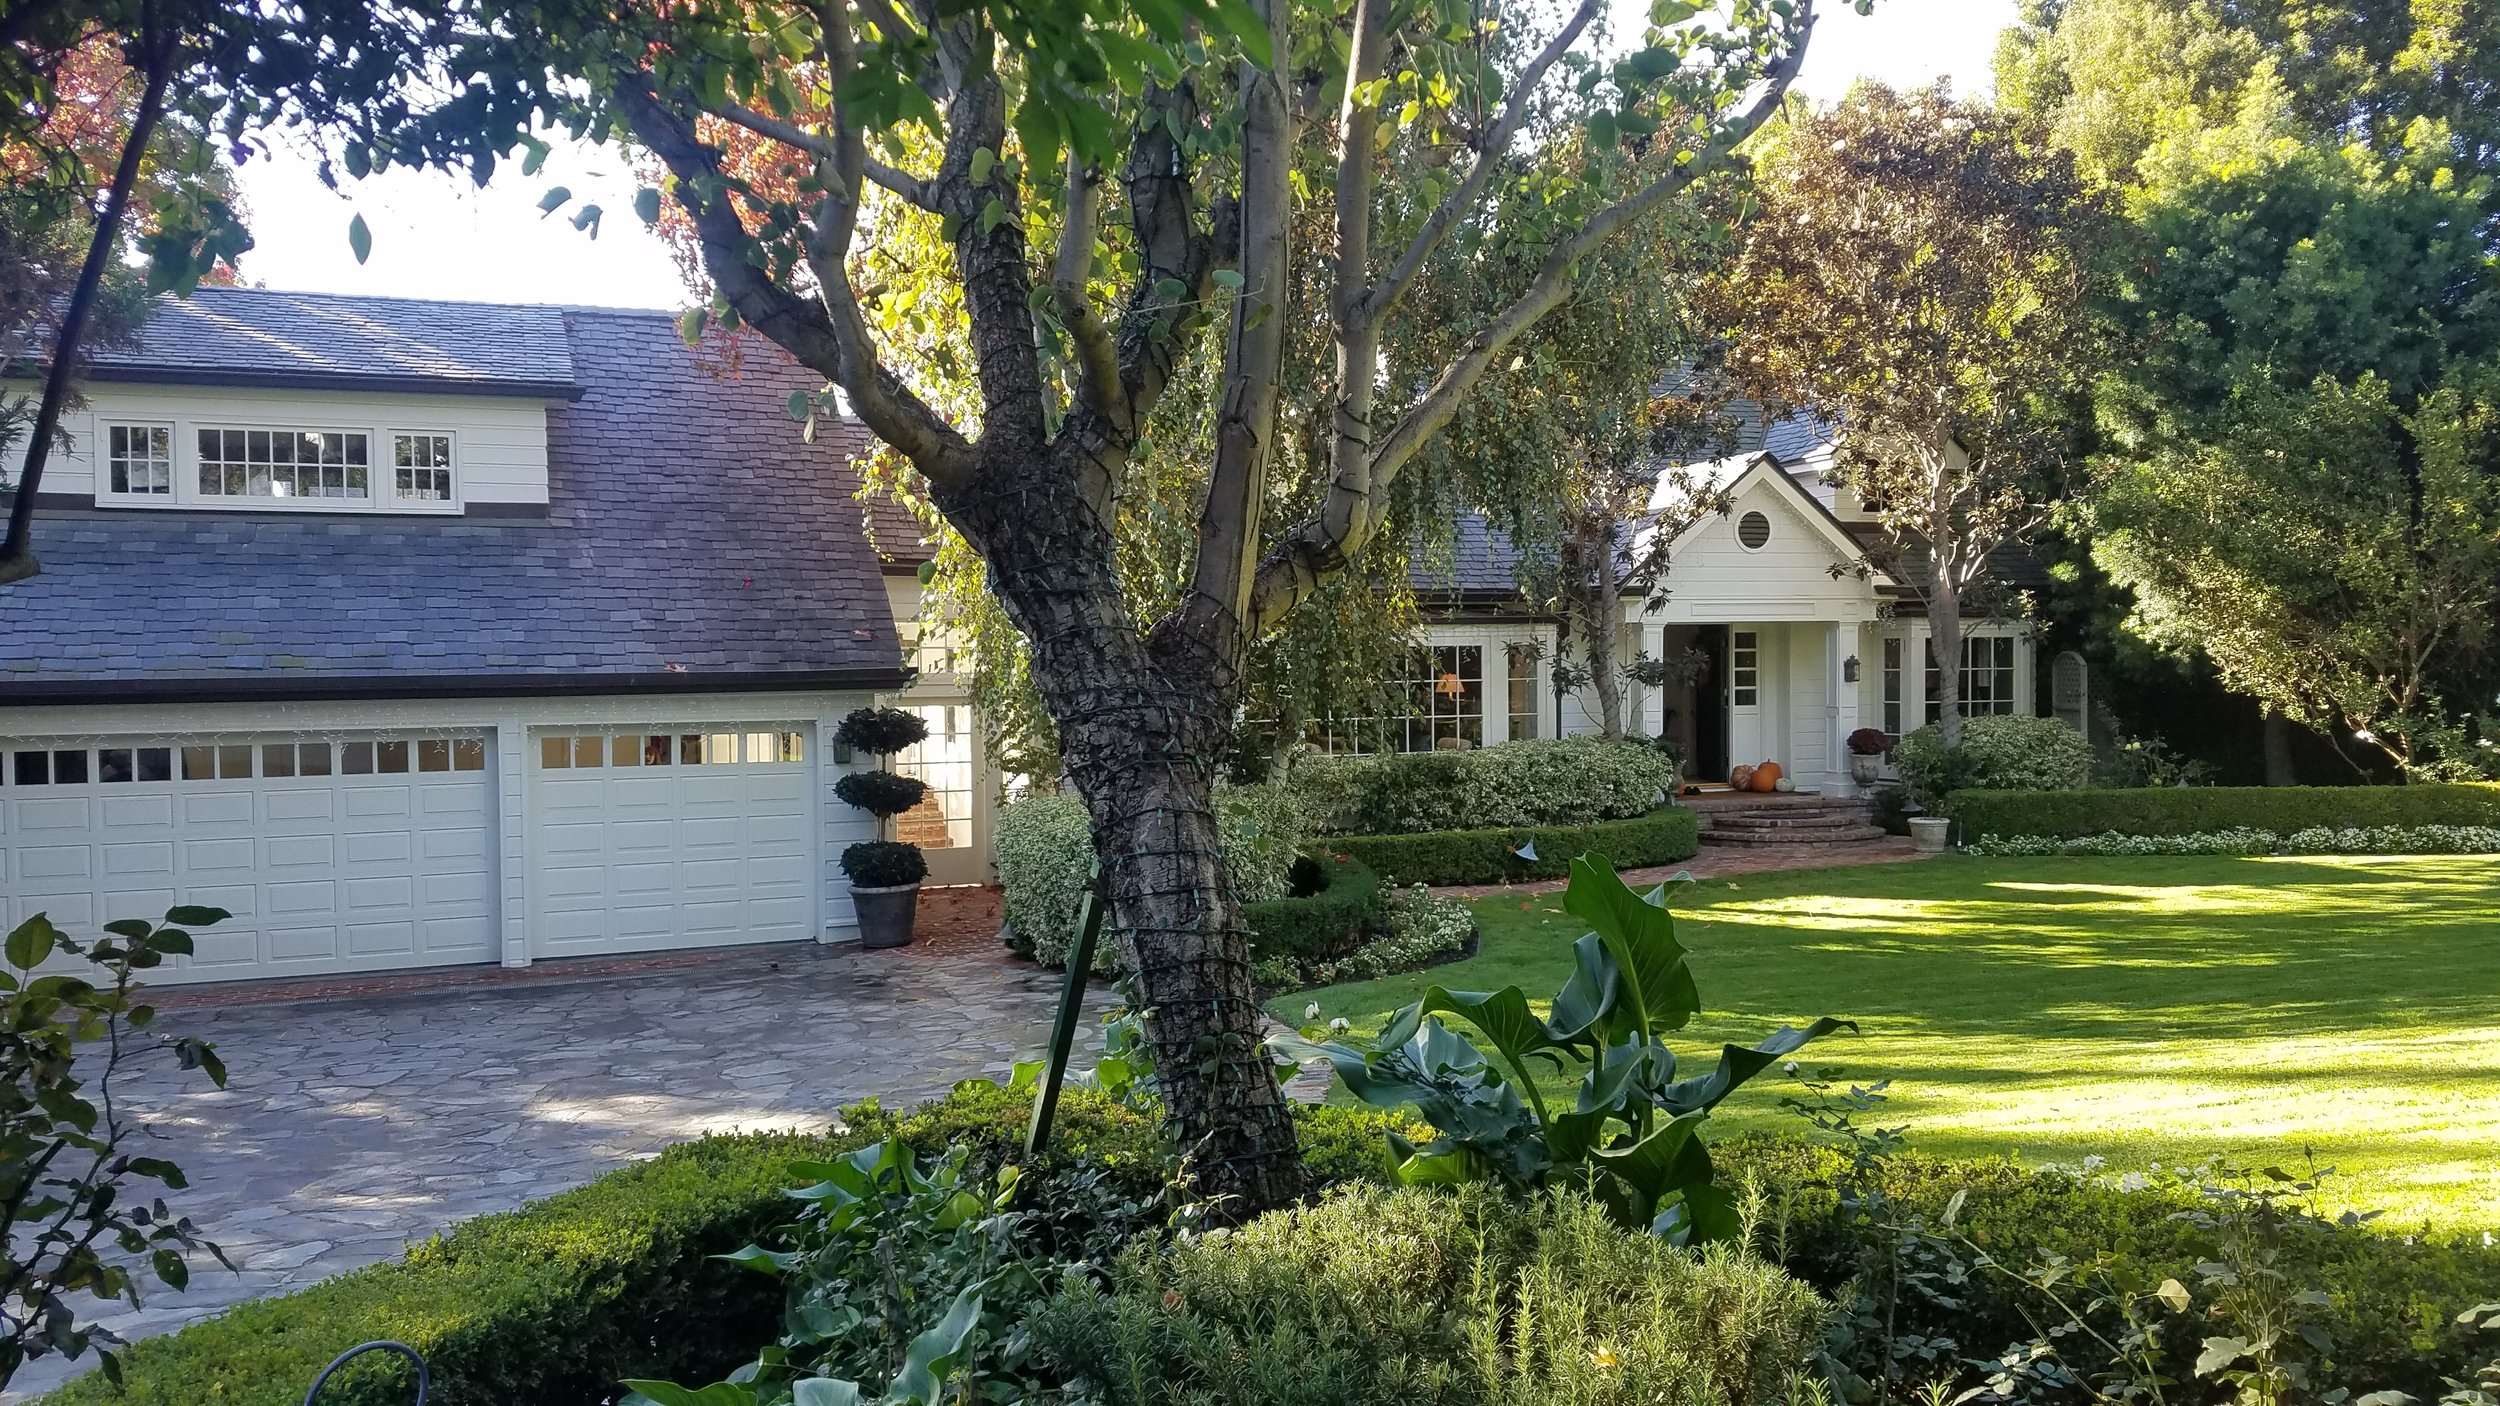 245 S Burlingame Ave | Brentwood | Offered at $6,995,000